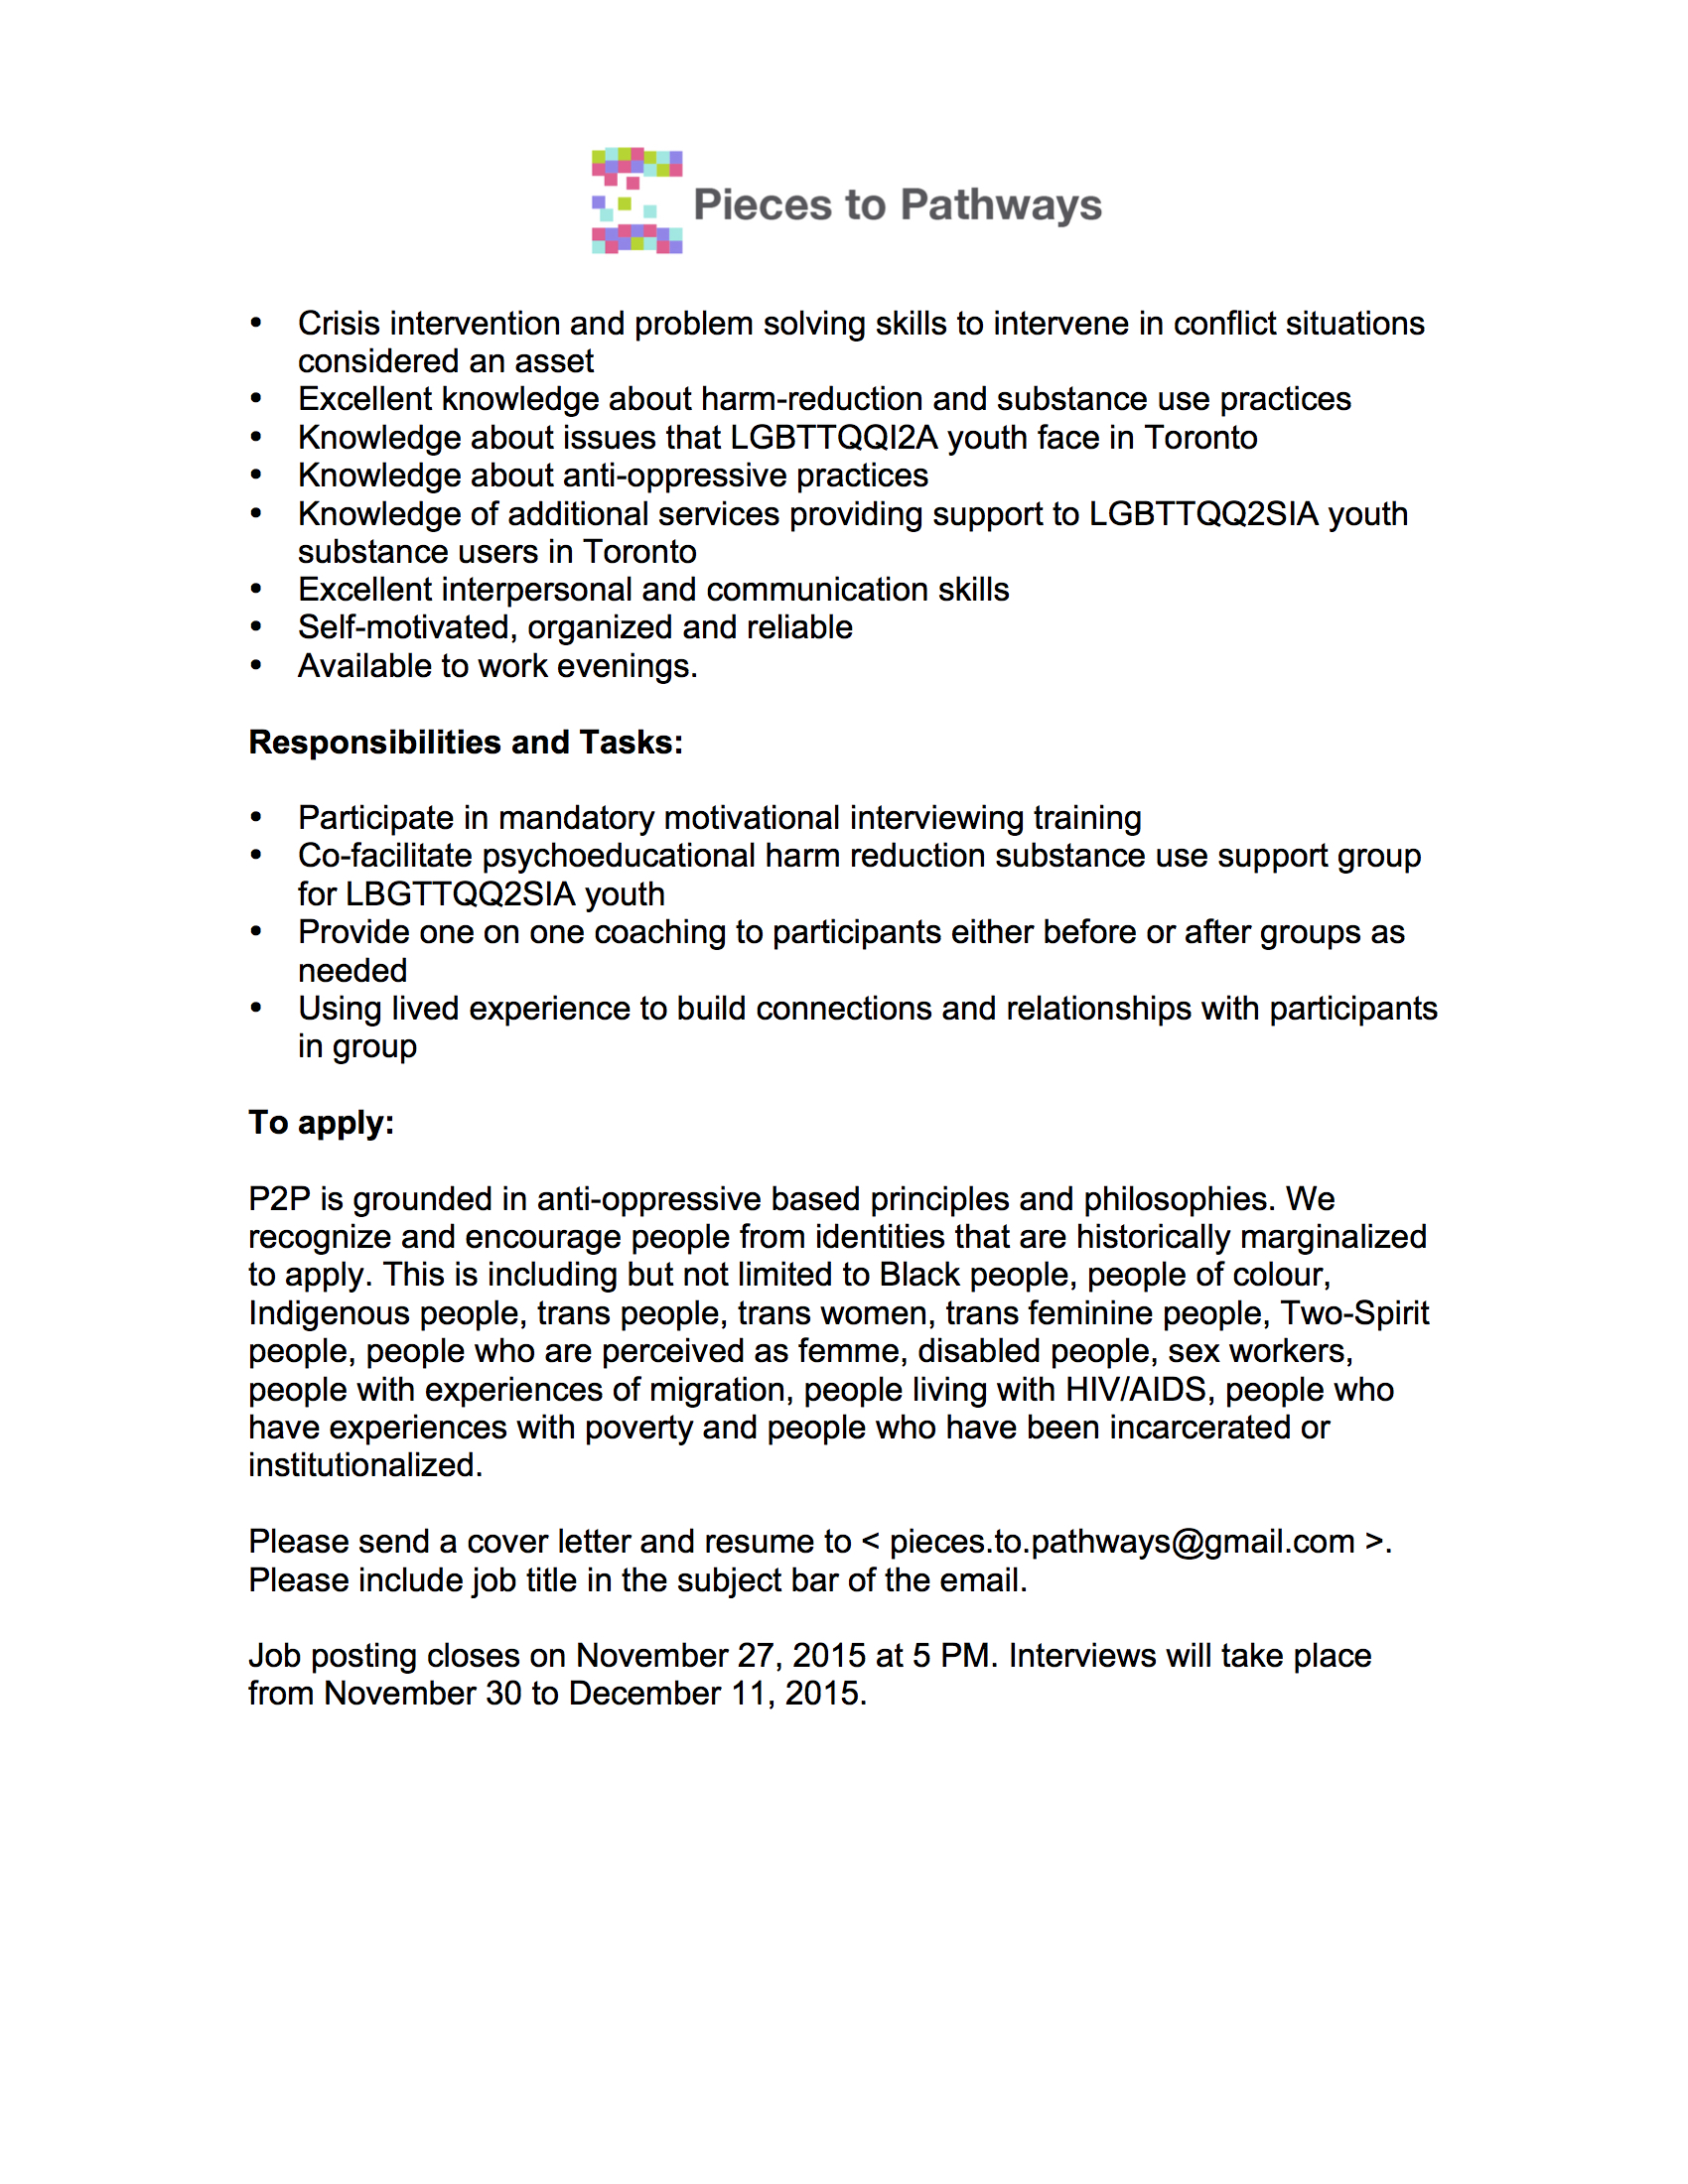 Jobs Comes Under Group 2 Pieces To Pathways Contract Harm Reduction Group Facilitator